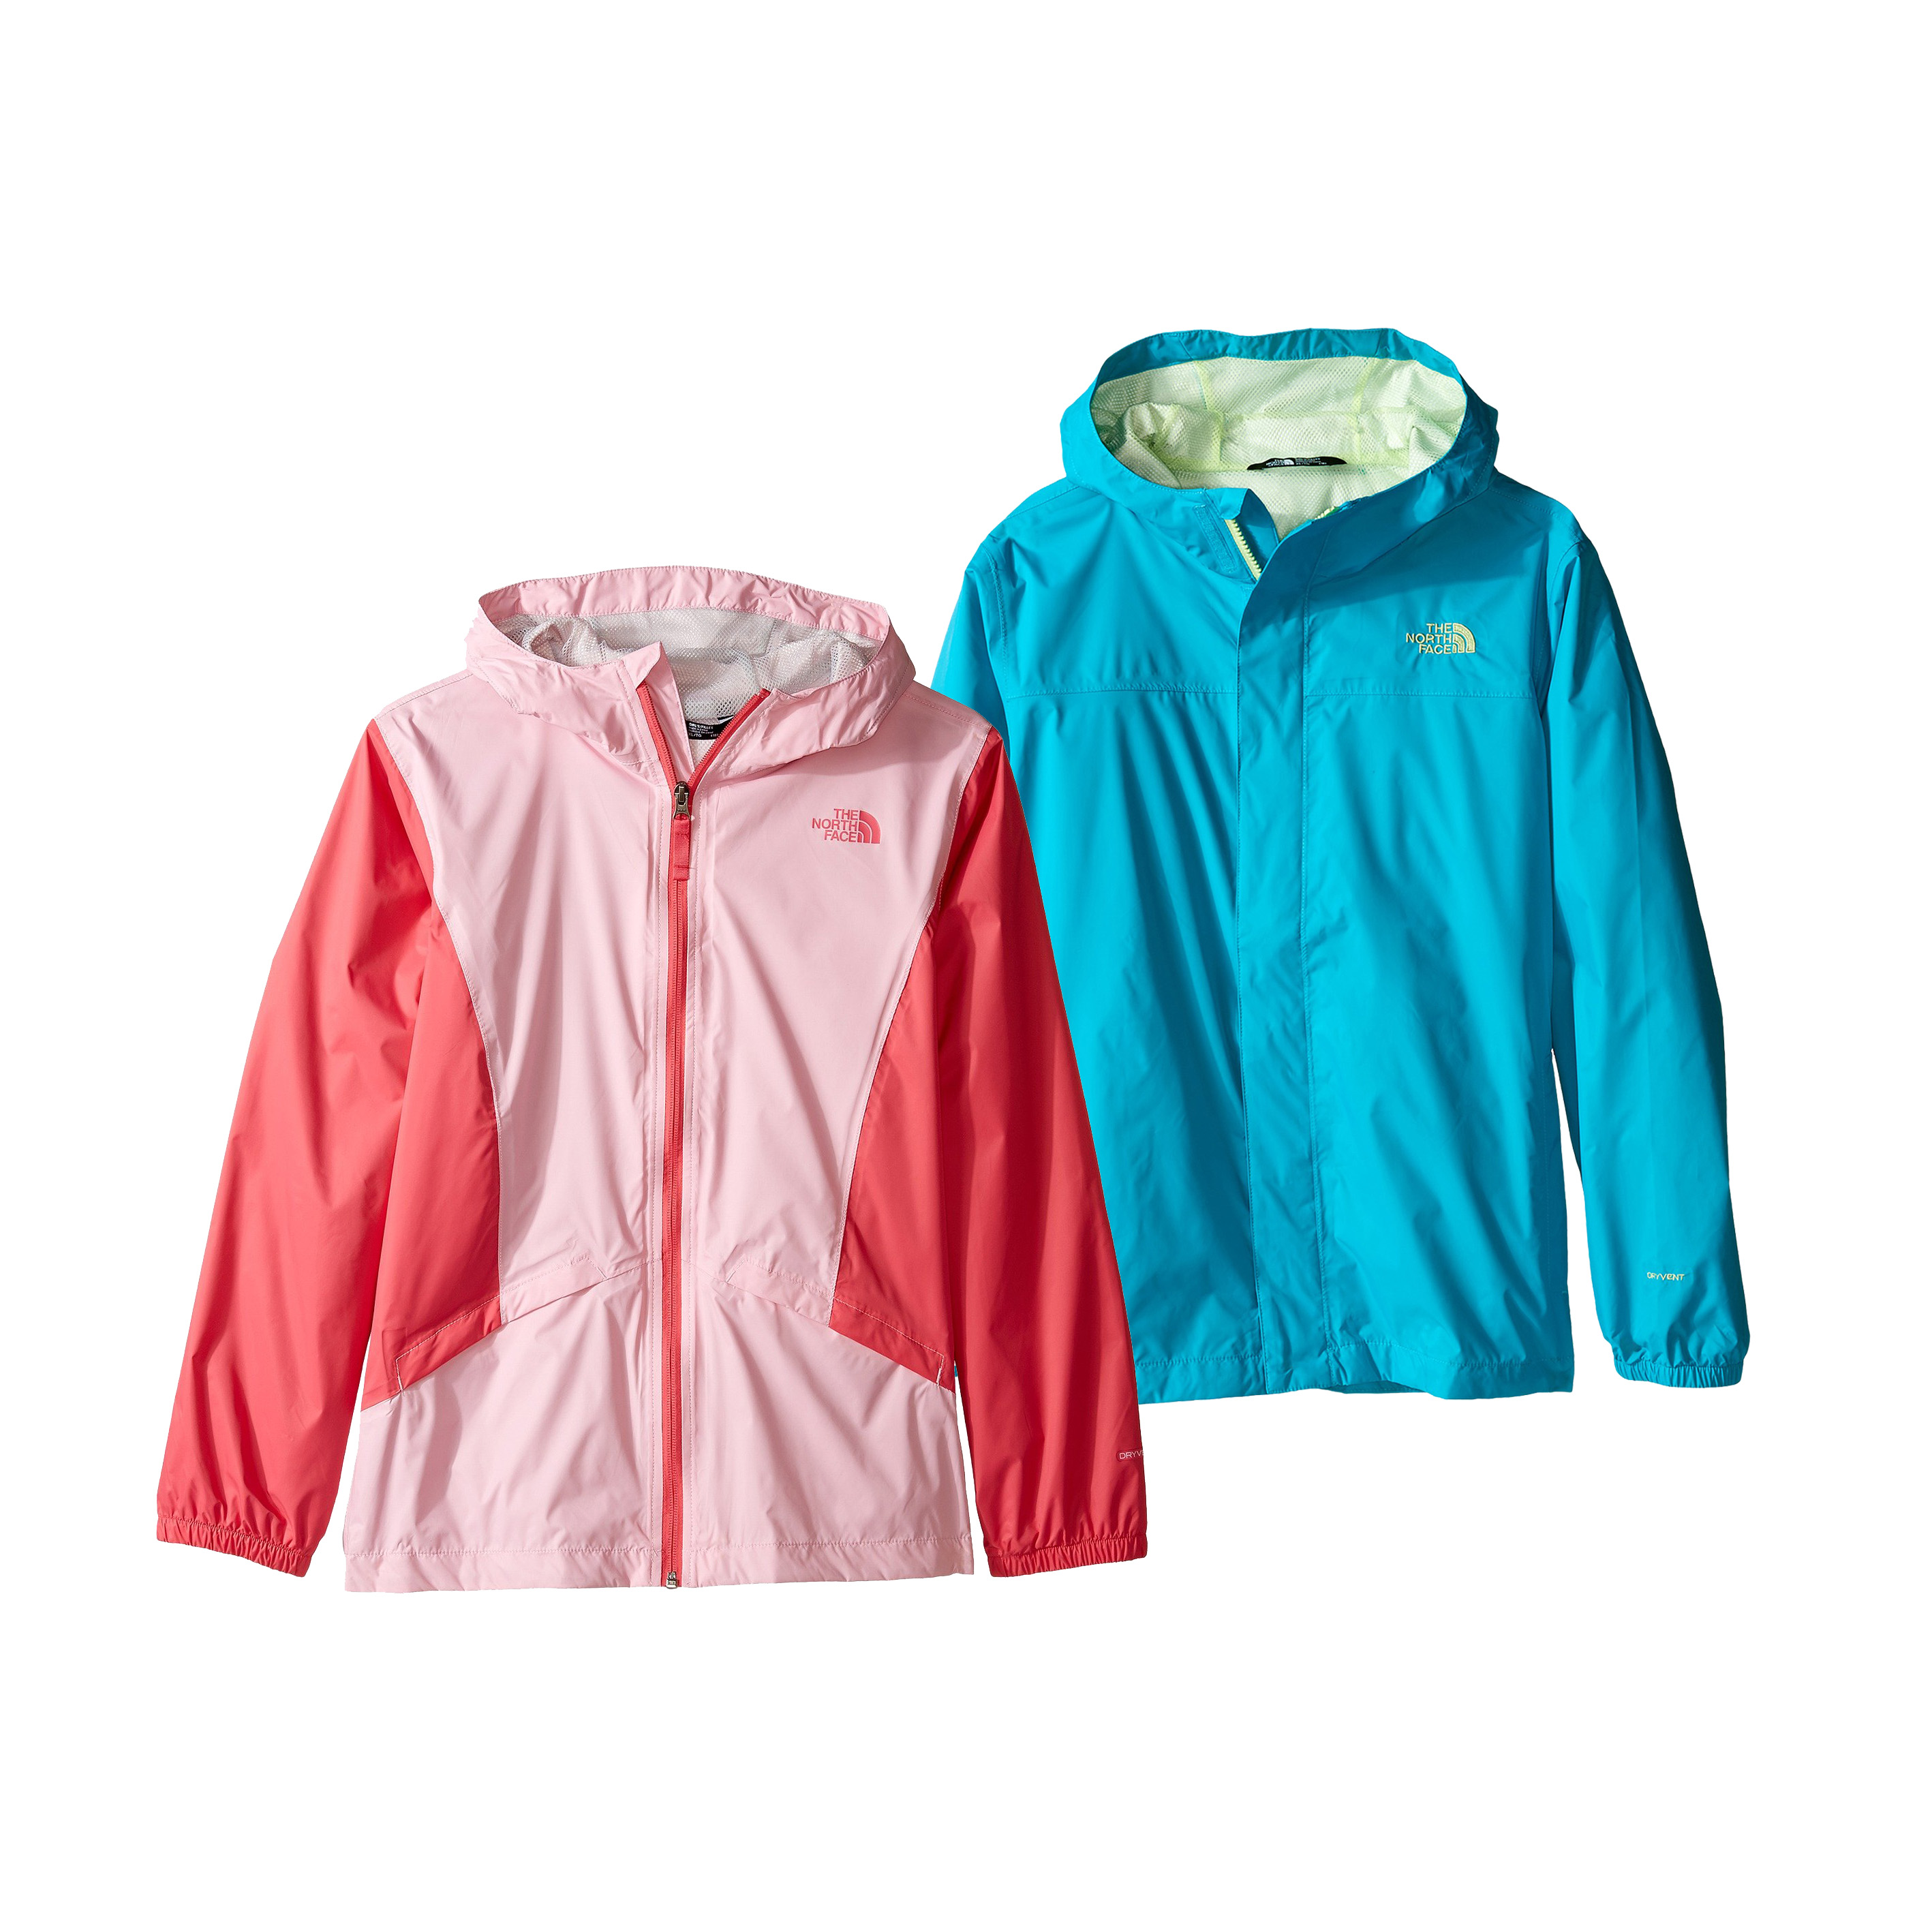 Authentic Spot The North Face Zipline North Girl HYVENT Stormwear